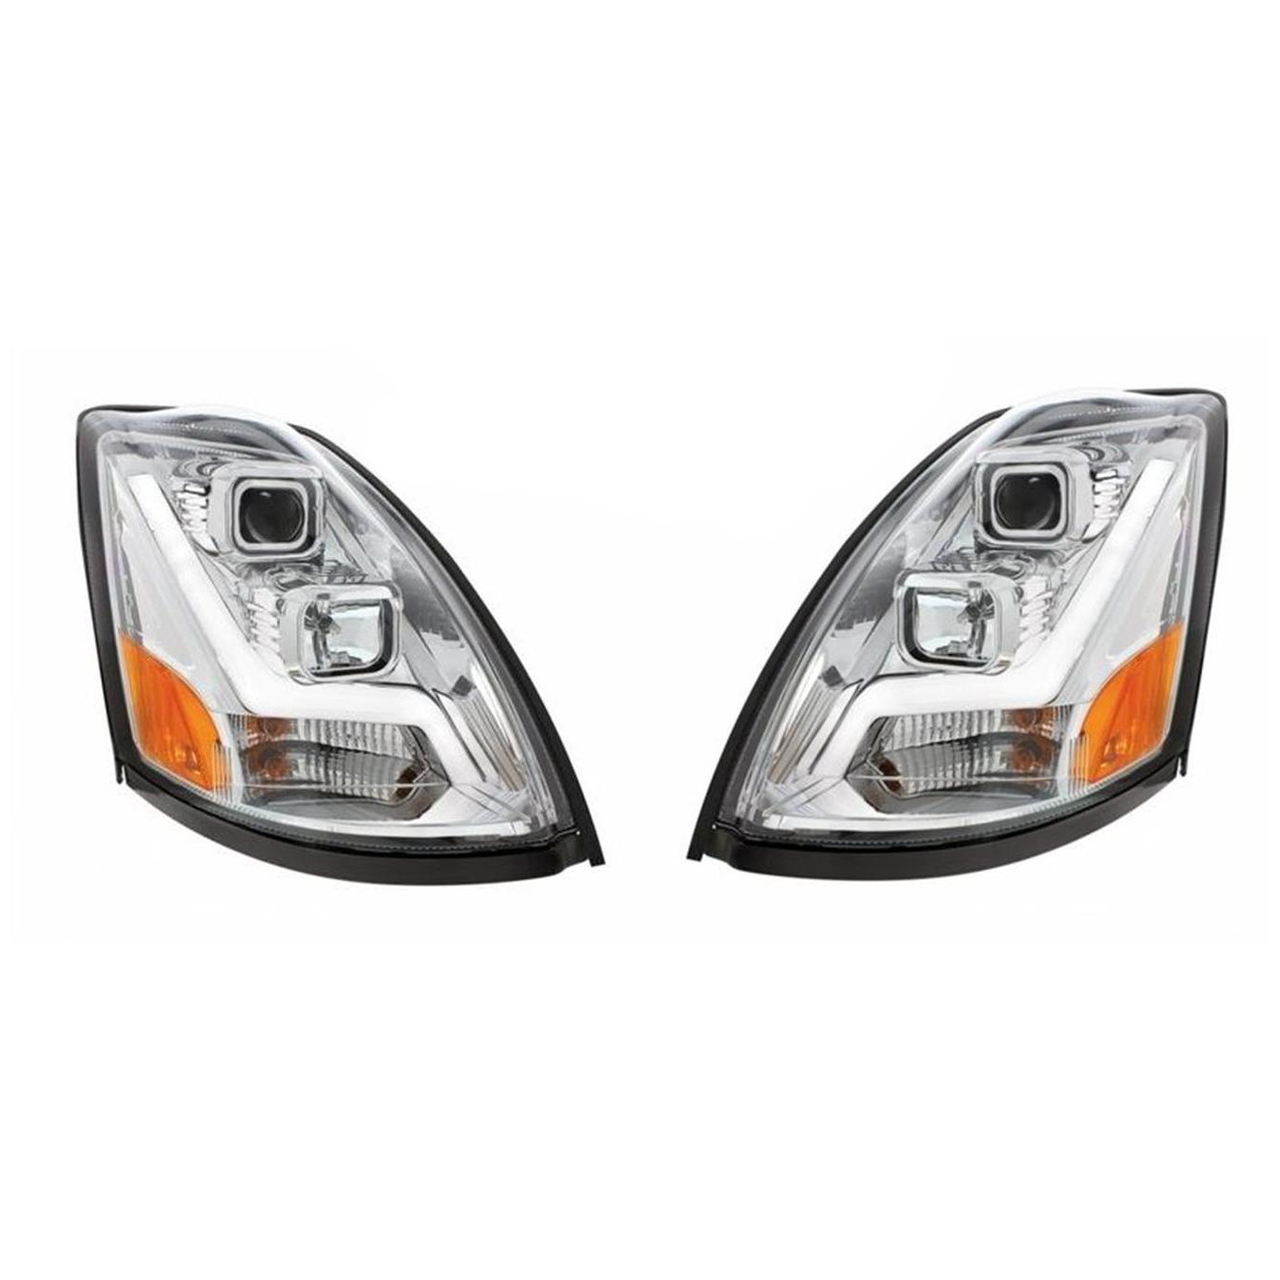 Volvo VN/VNL Projection Headlights with LED Position Light Bar, Chrome